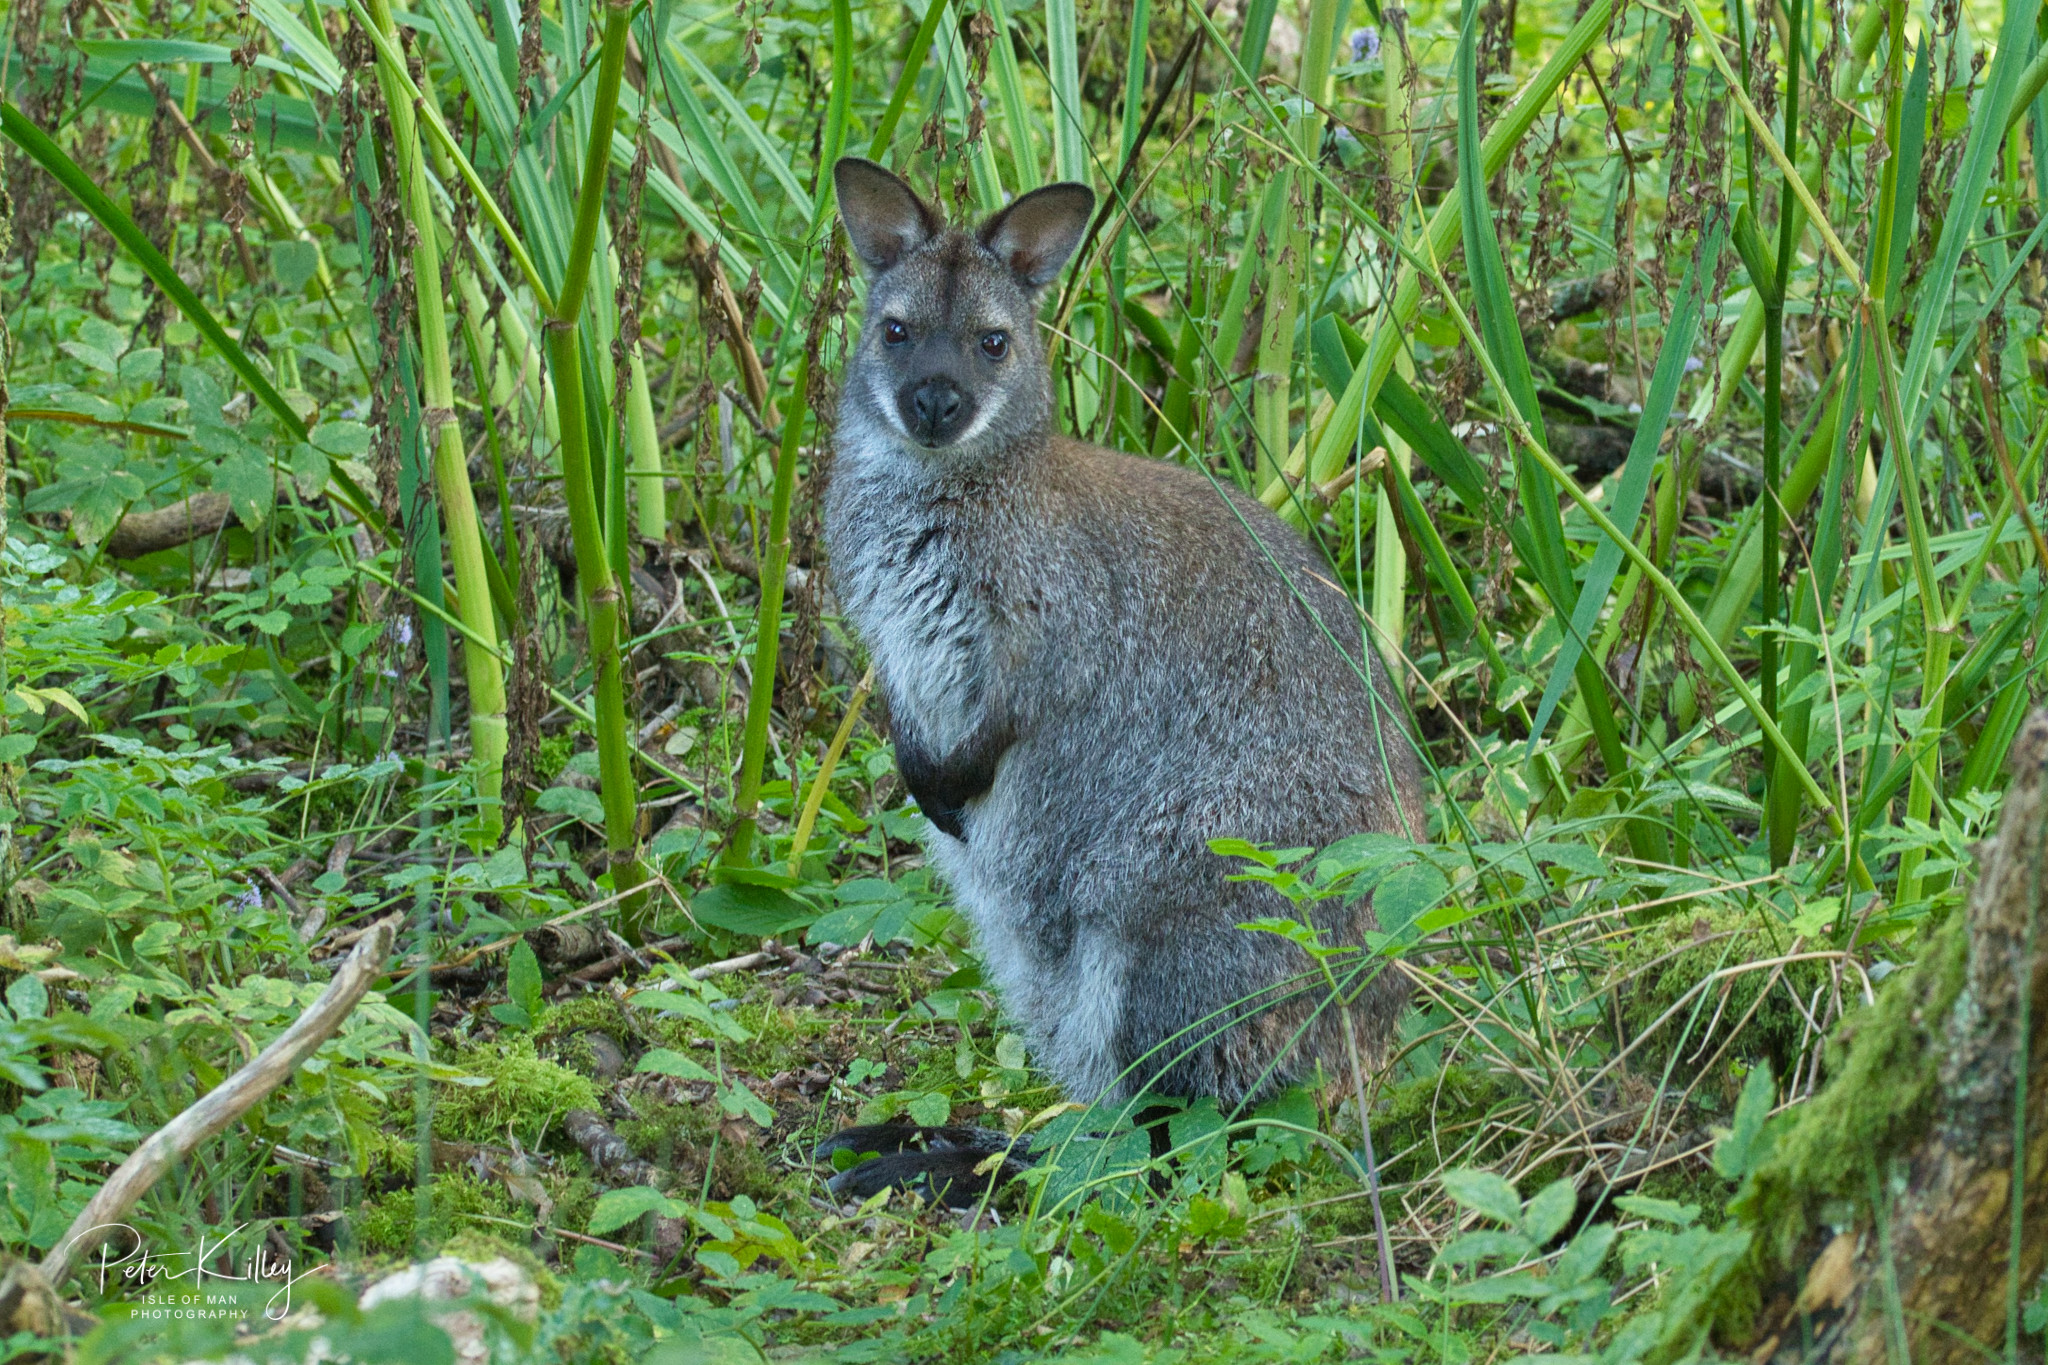 Wild Wallaby - Ballaugh - © Peter Killey - www.manxscenes.com